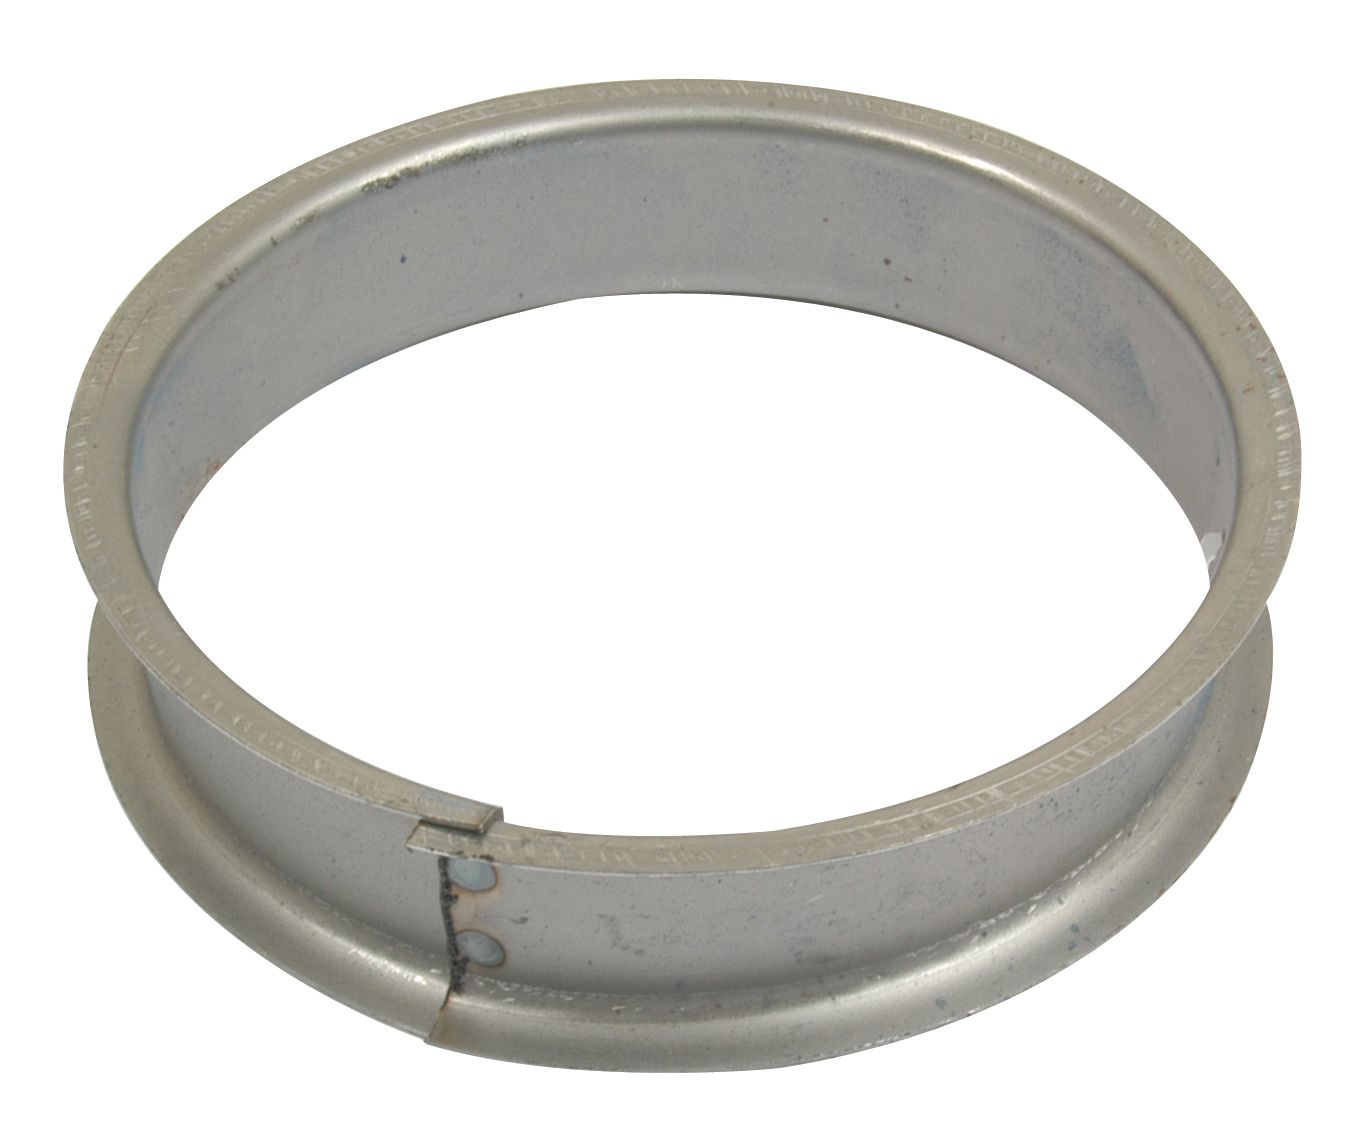 "NOT SPECIFIED BUSH-AXLE SPACER 5"" SHAFT 59774"